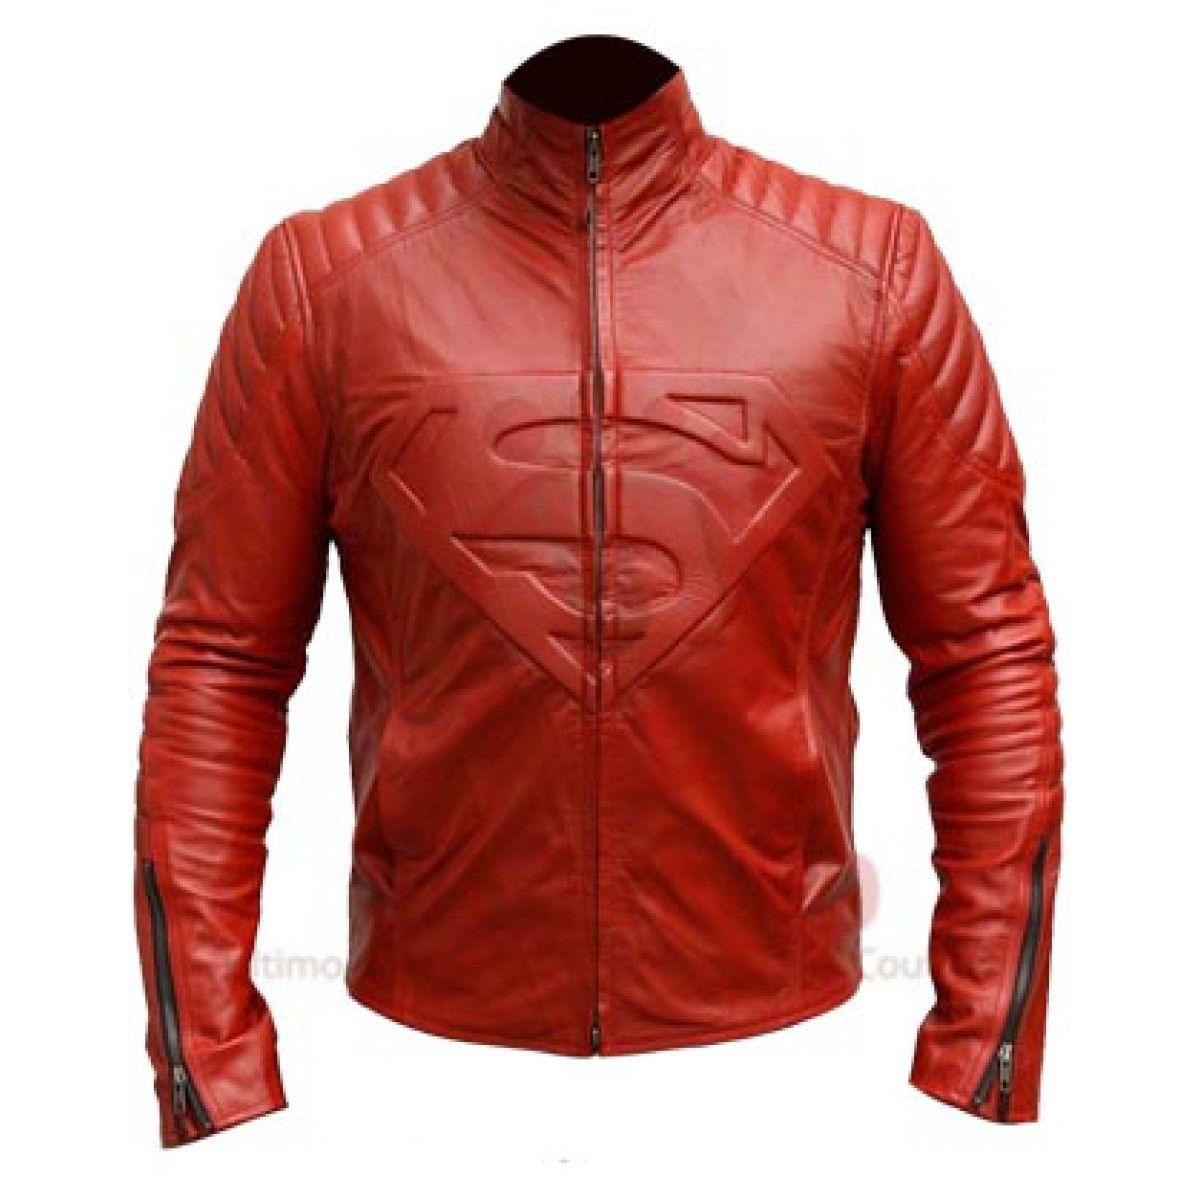 Superman Smallville Red Leather Jacket | Leather jacket